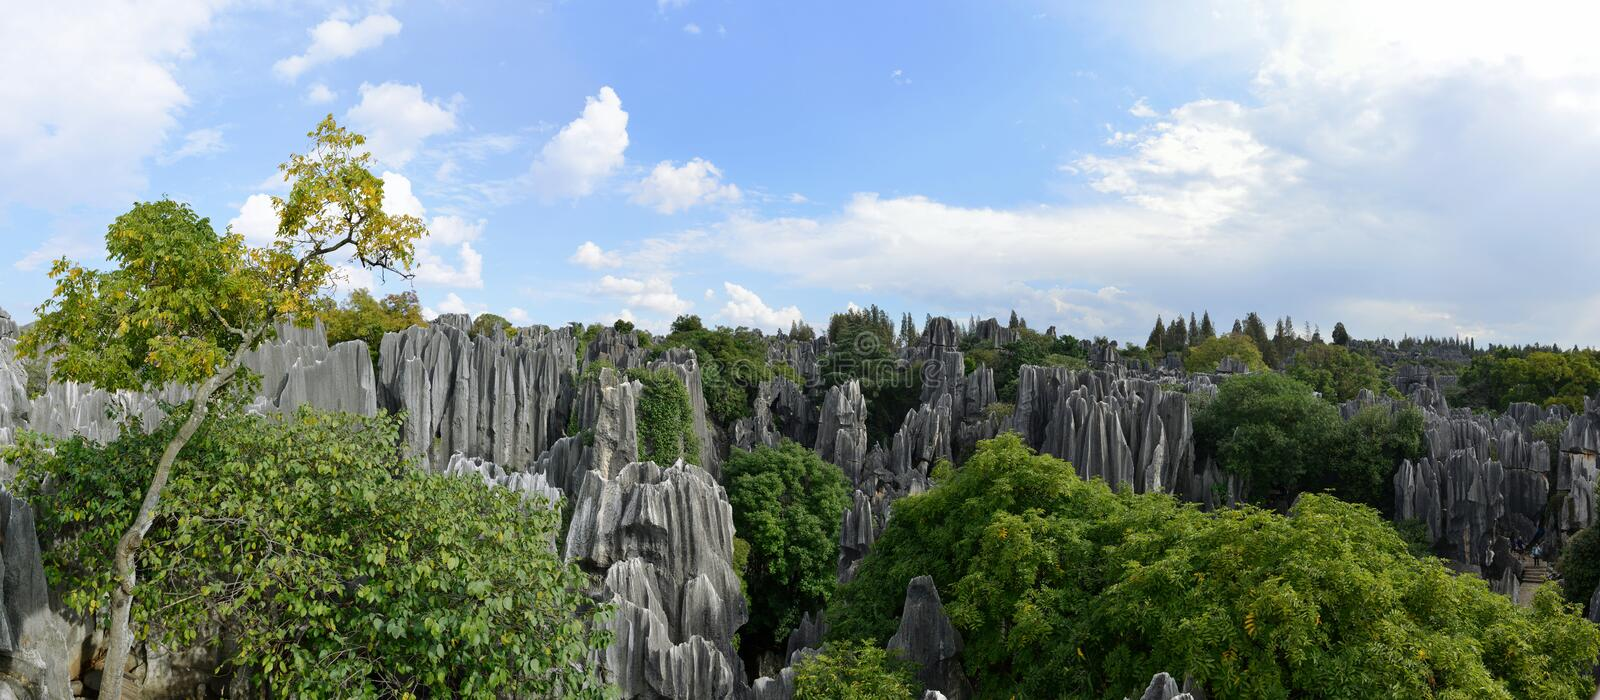 The panorama of Shilin Stone Forest in Kunming, Yunnan, China. Shilin Stone Forest in Kunming, Yunnan province, China stock photos